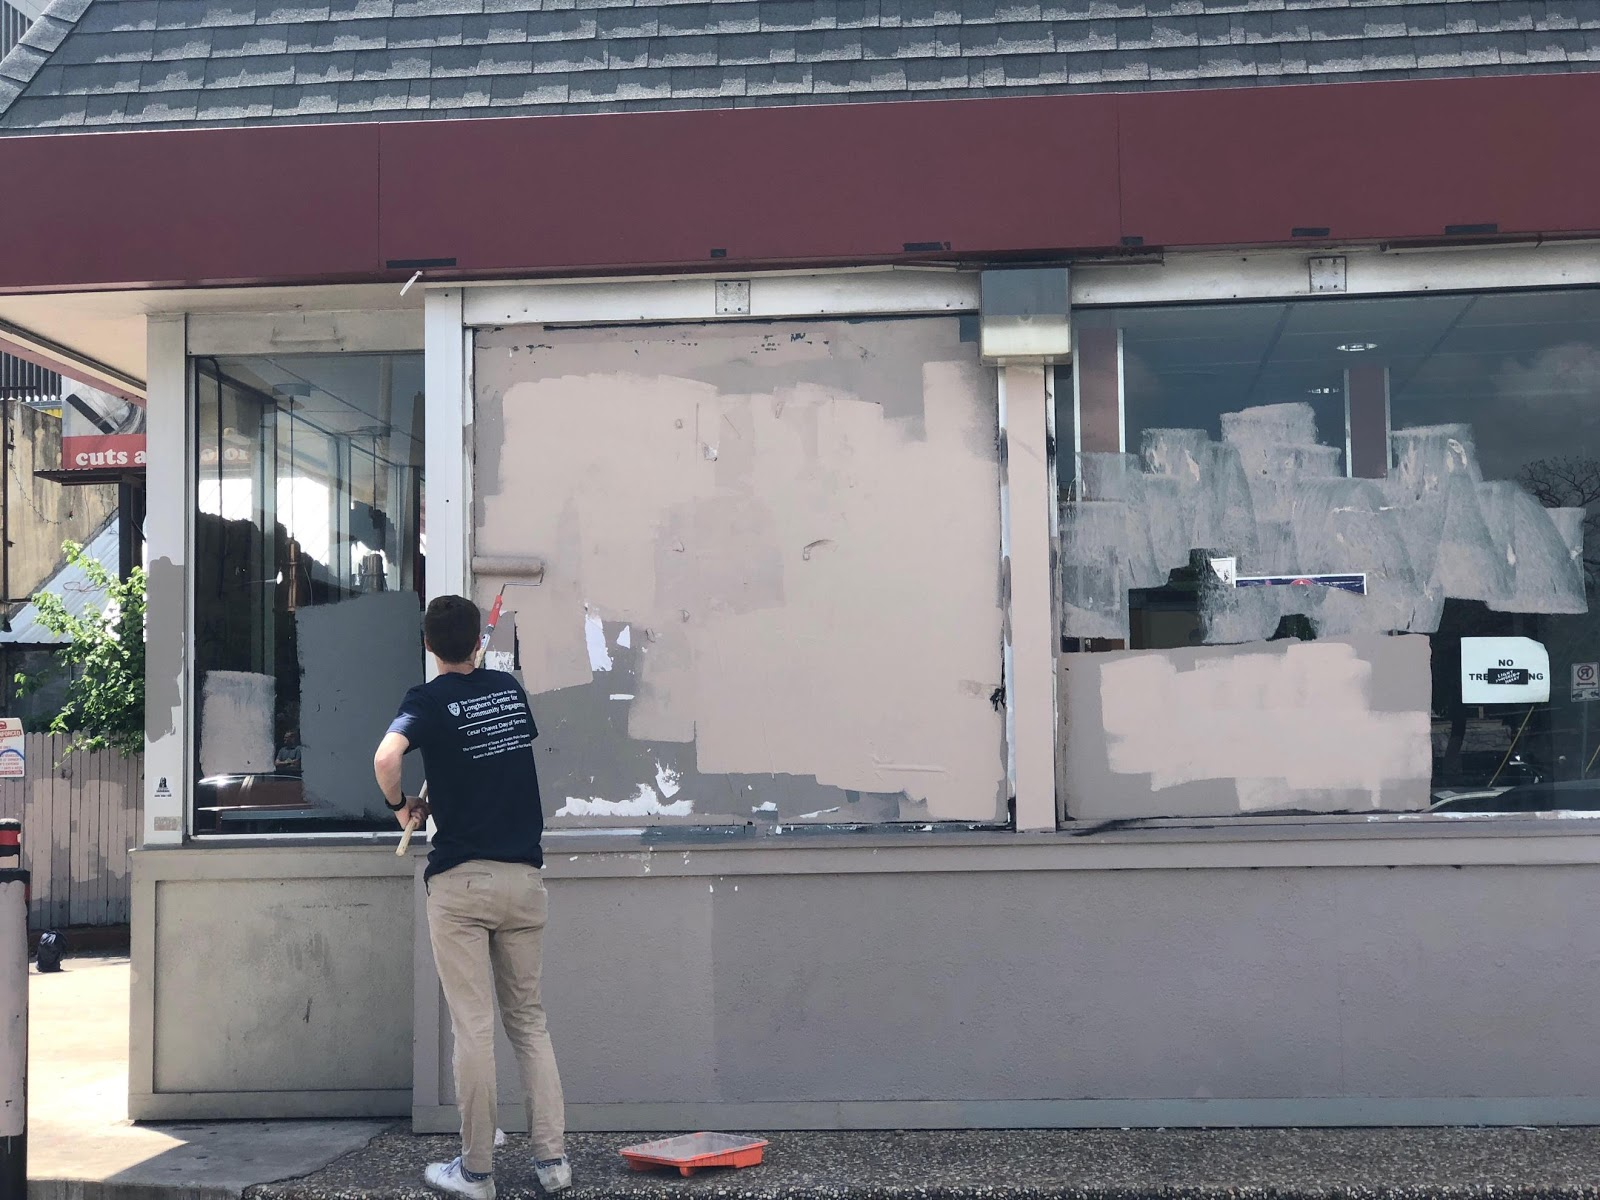 A volunteer paints over graffiti on a former Jack In The Box's window.